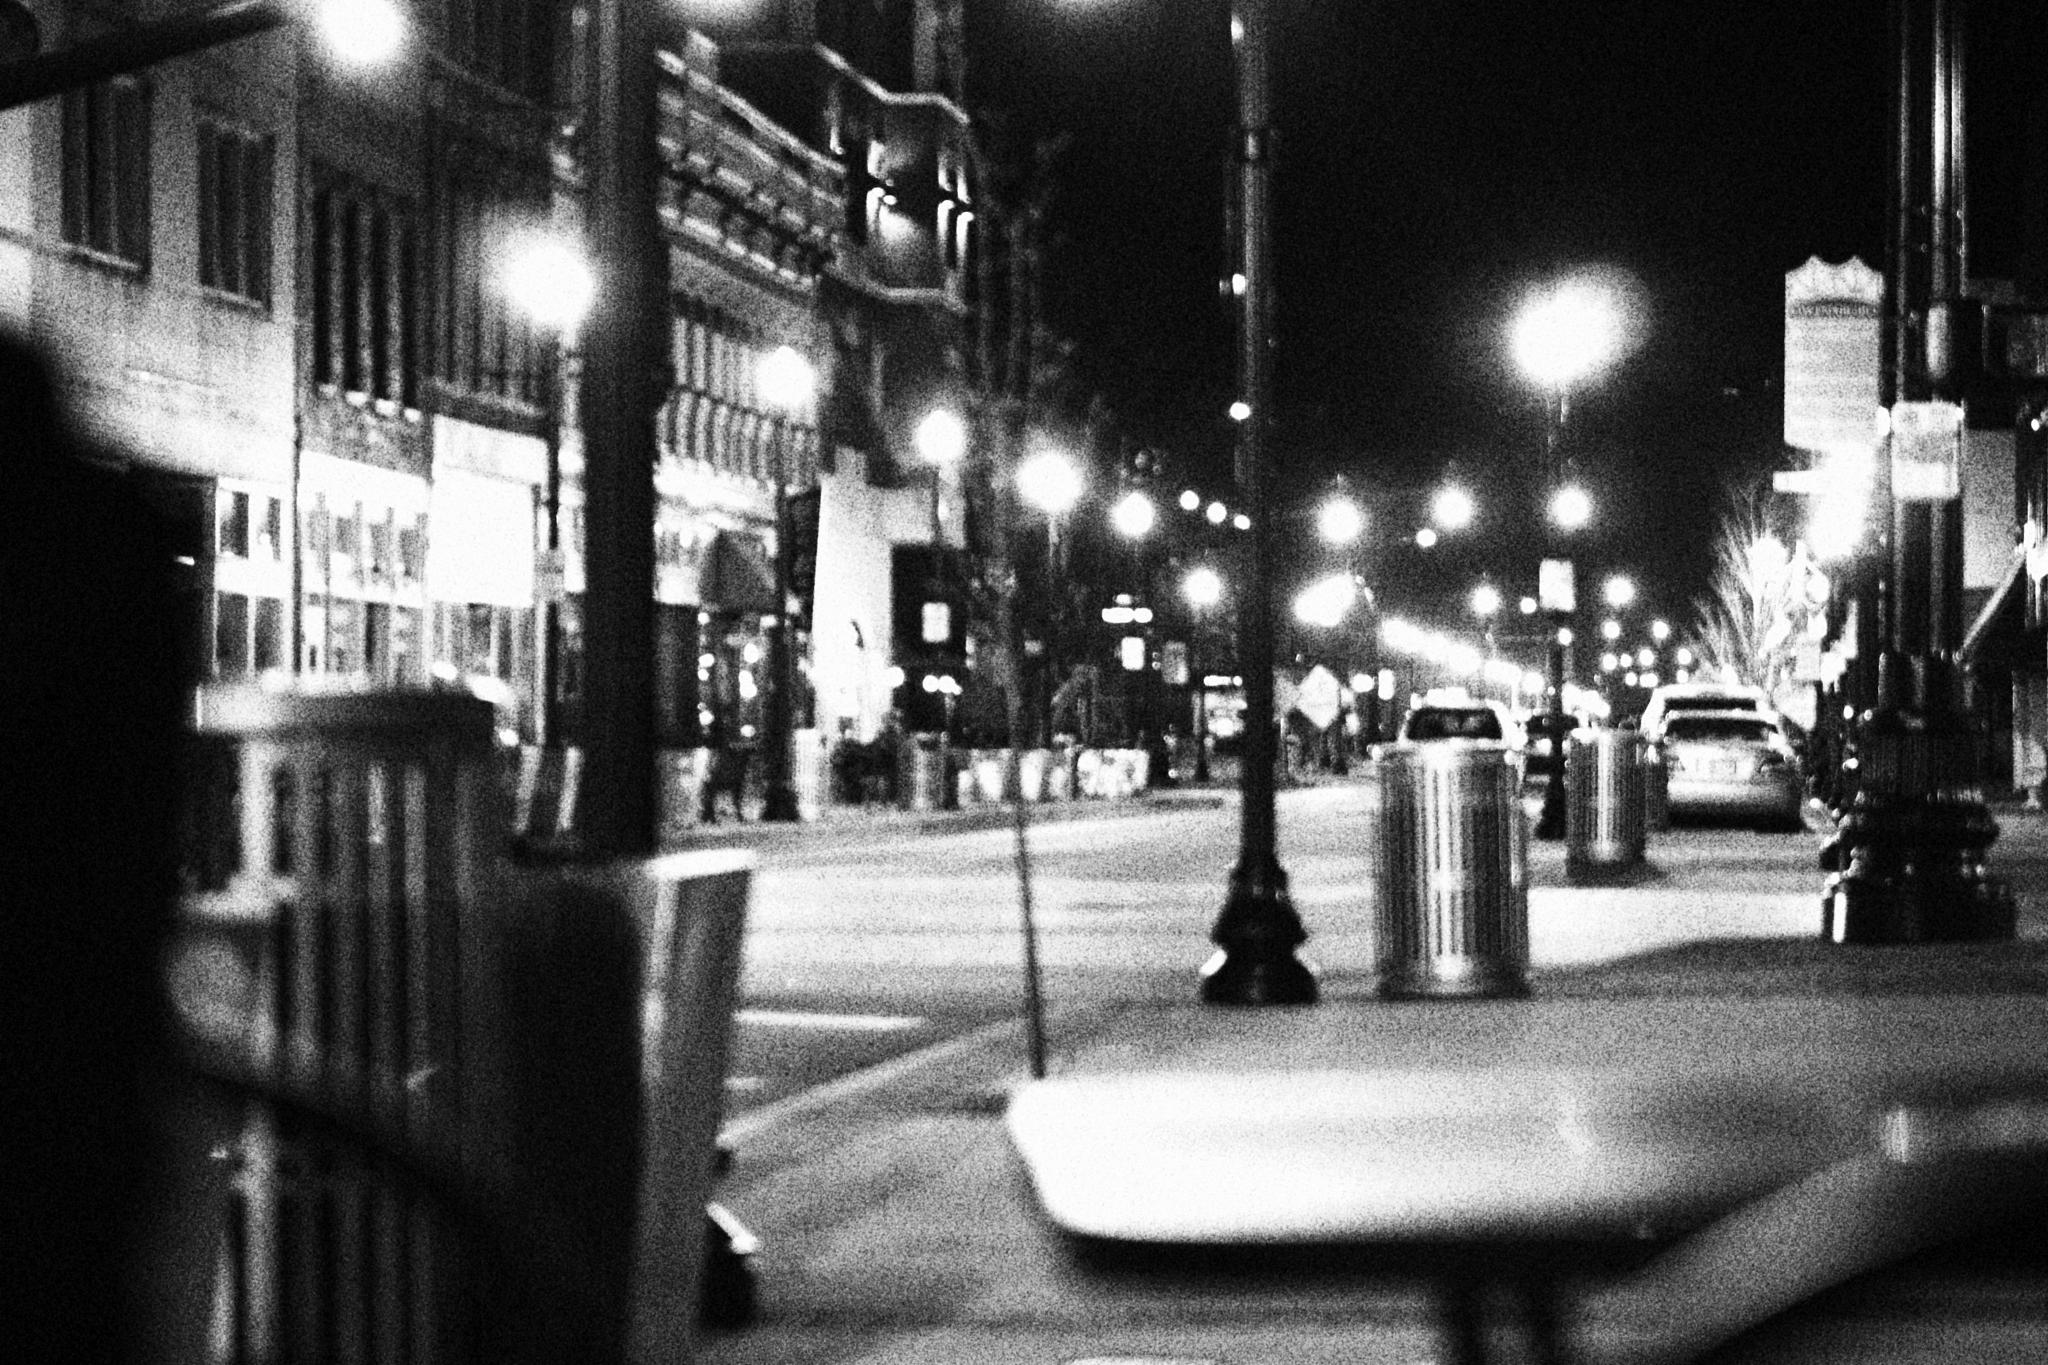 Night [Alone In] Life by Charlie DeLacey